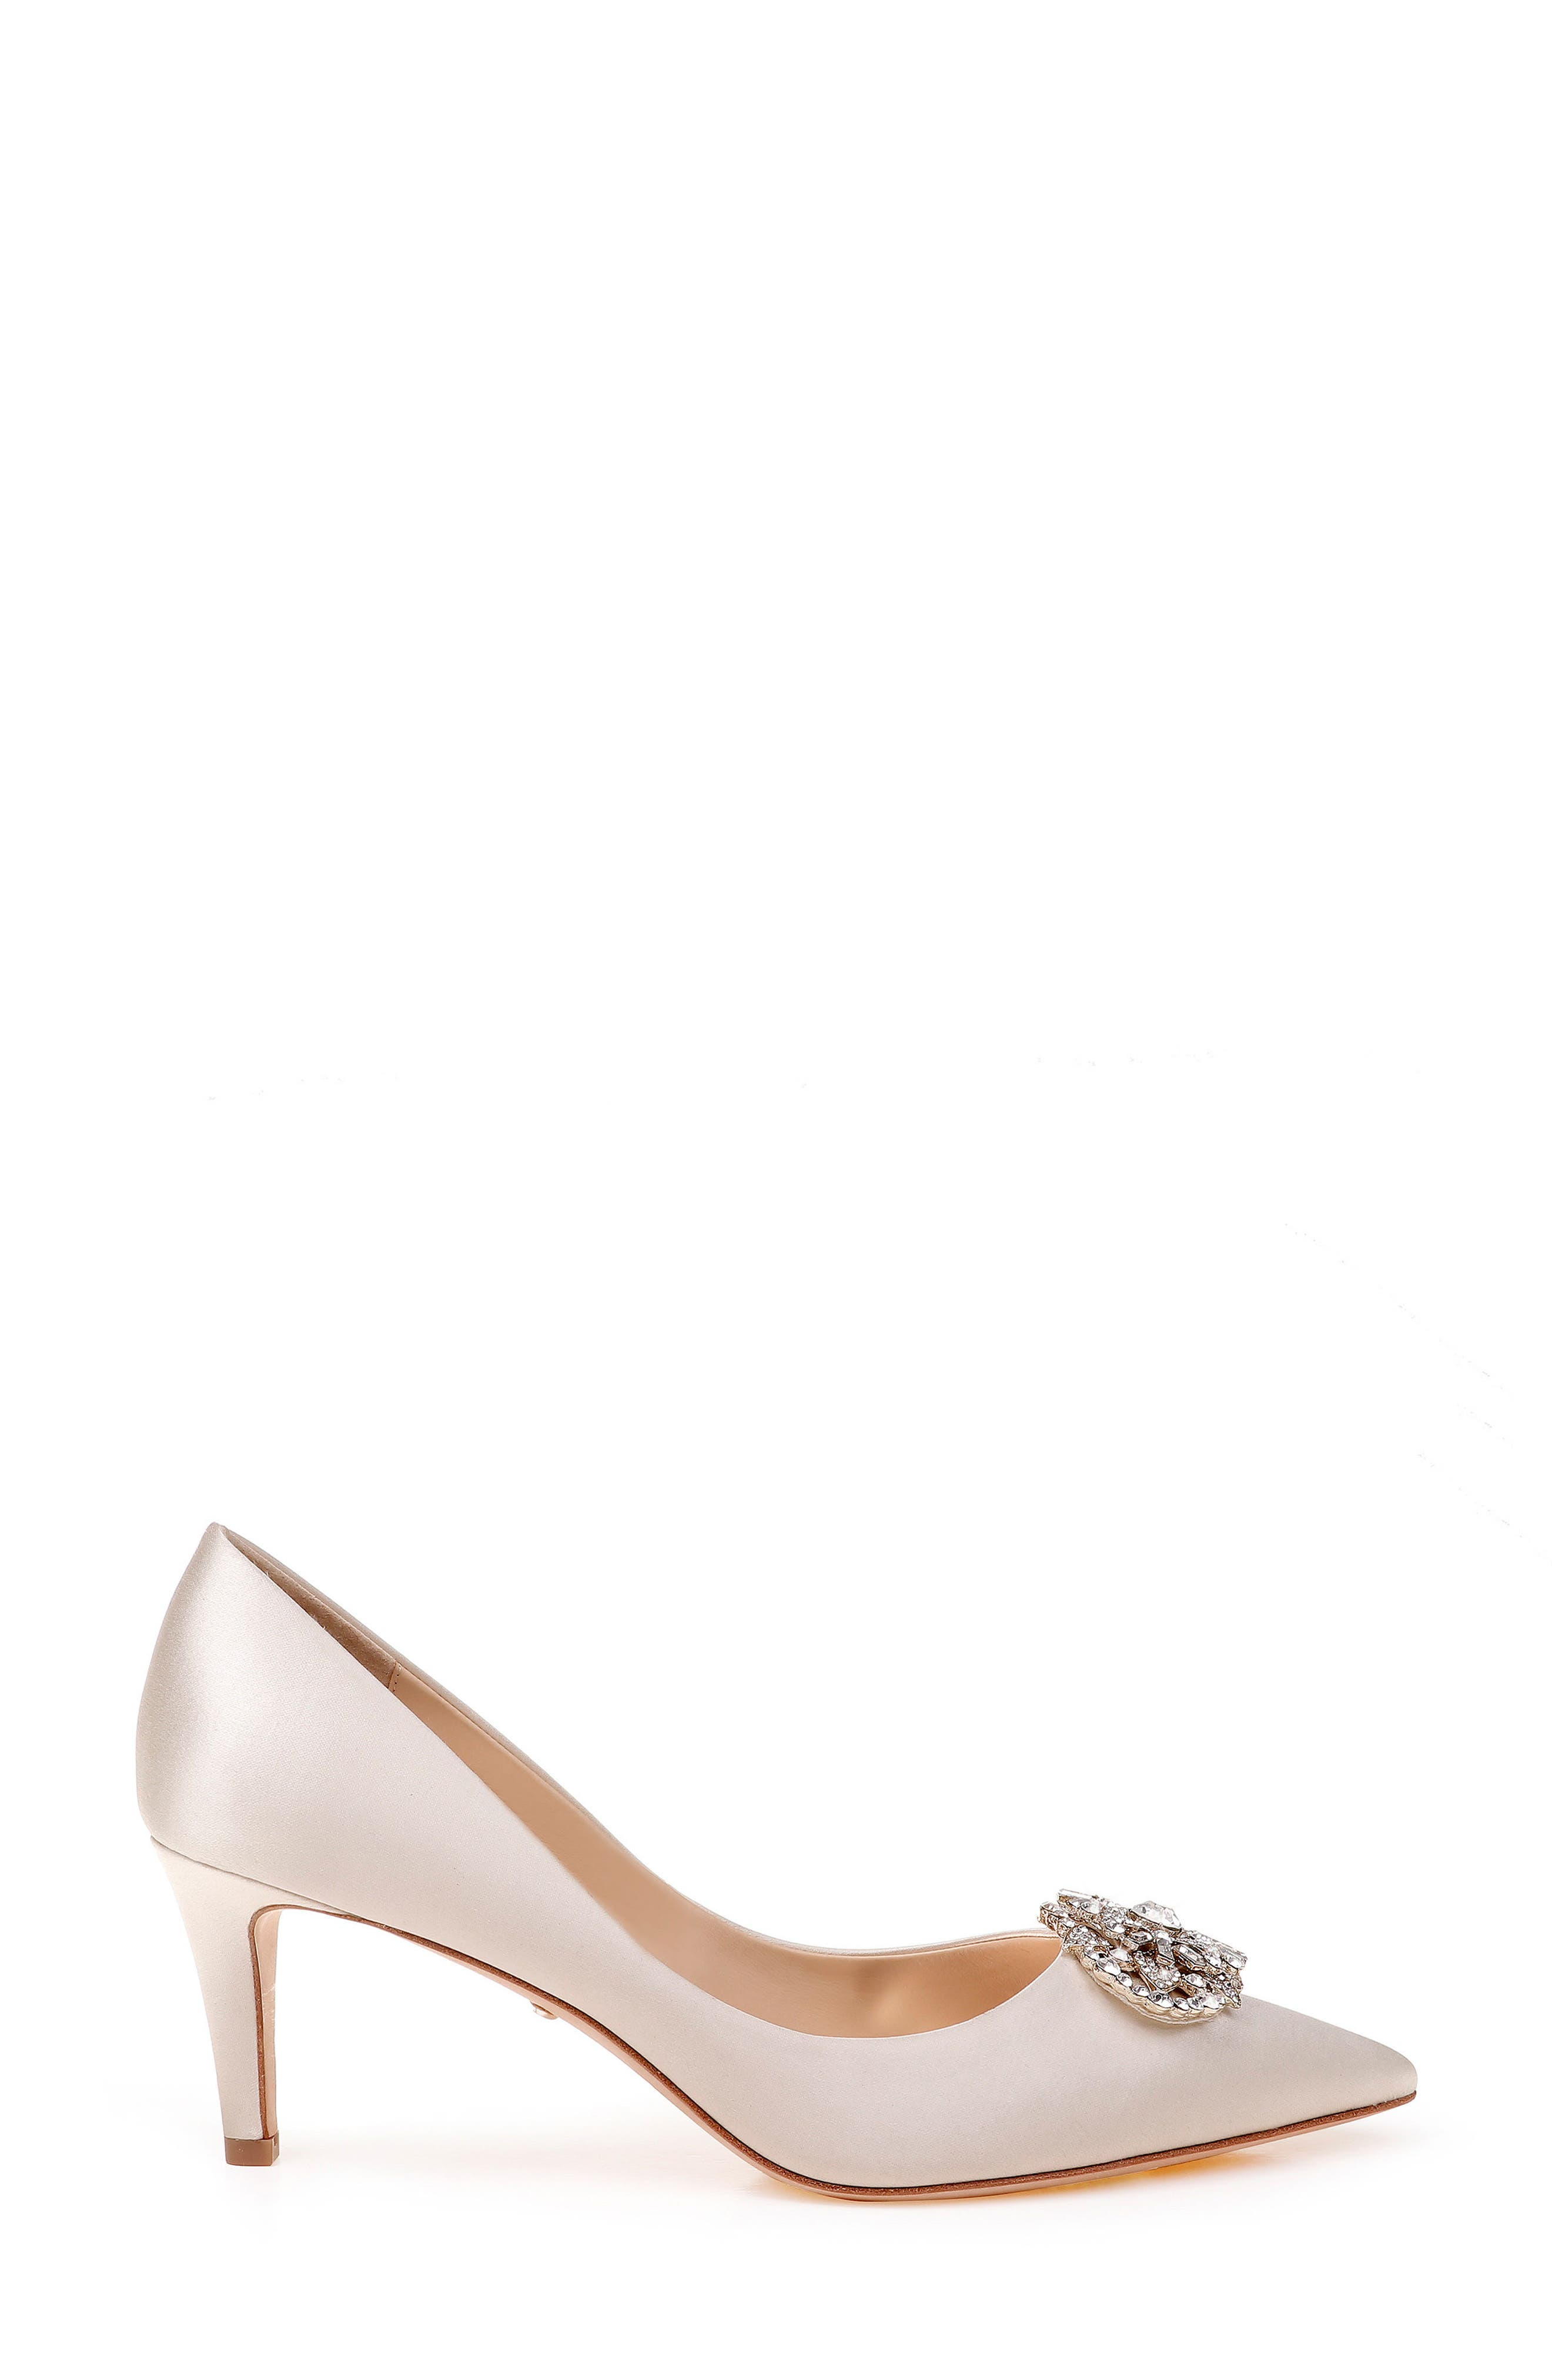 Sunshine Embellished Pump,                             Alternate thumbnail 3, color,                             IVORY SATIN